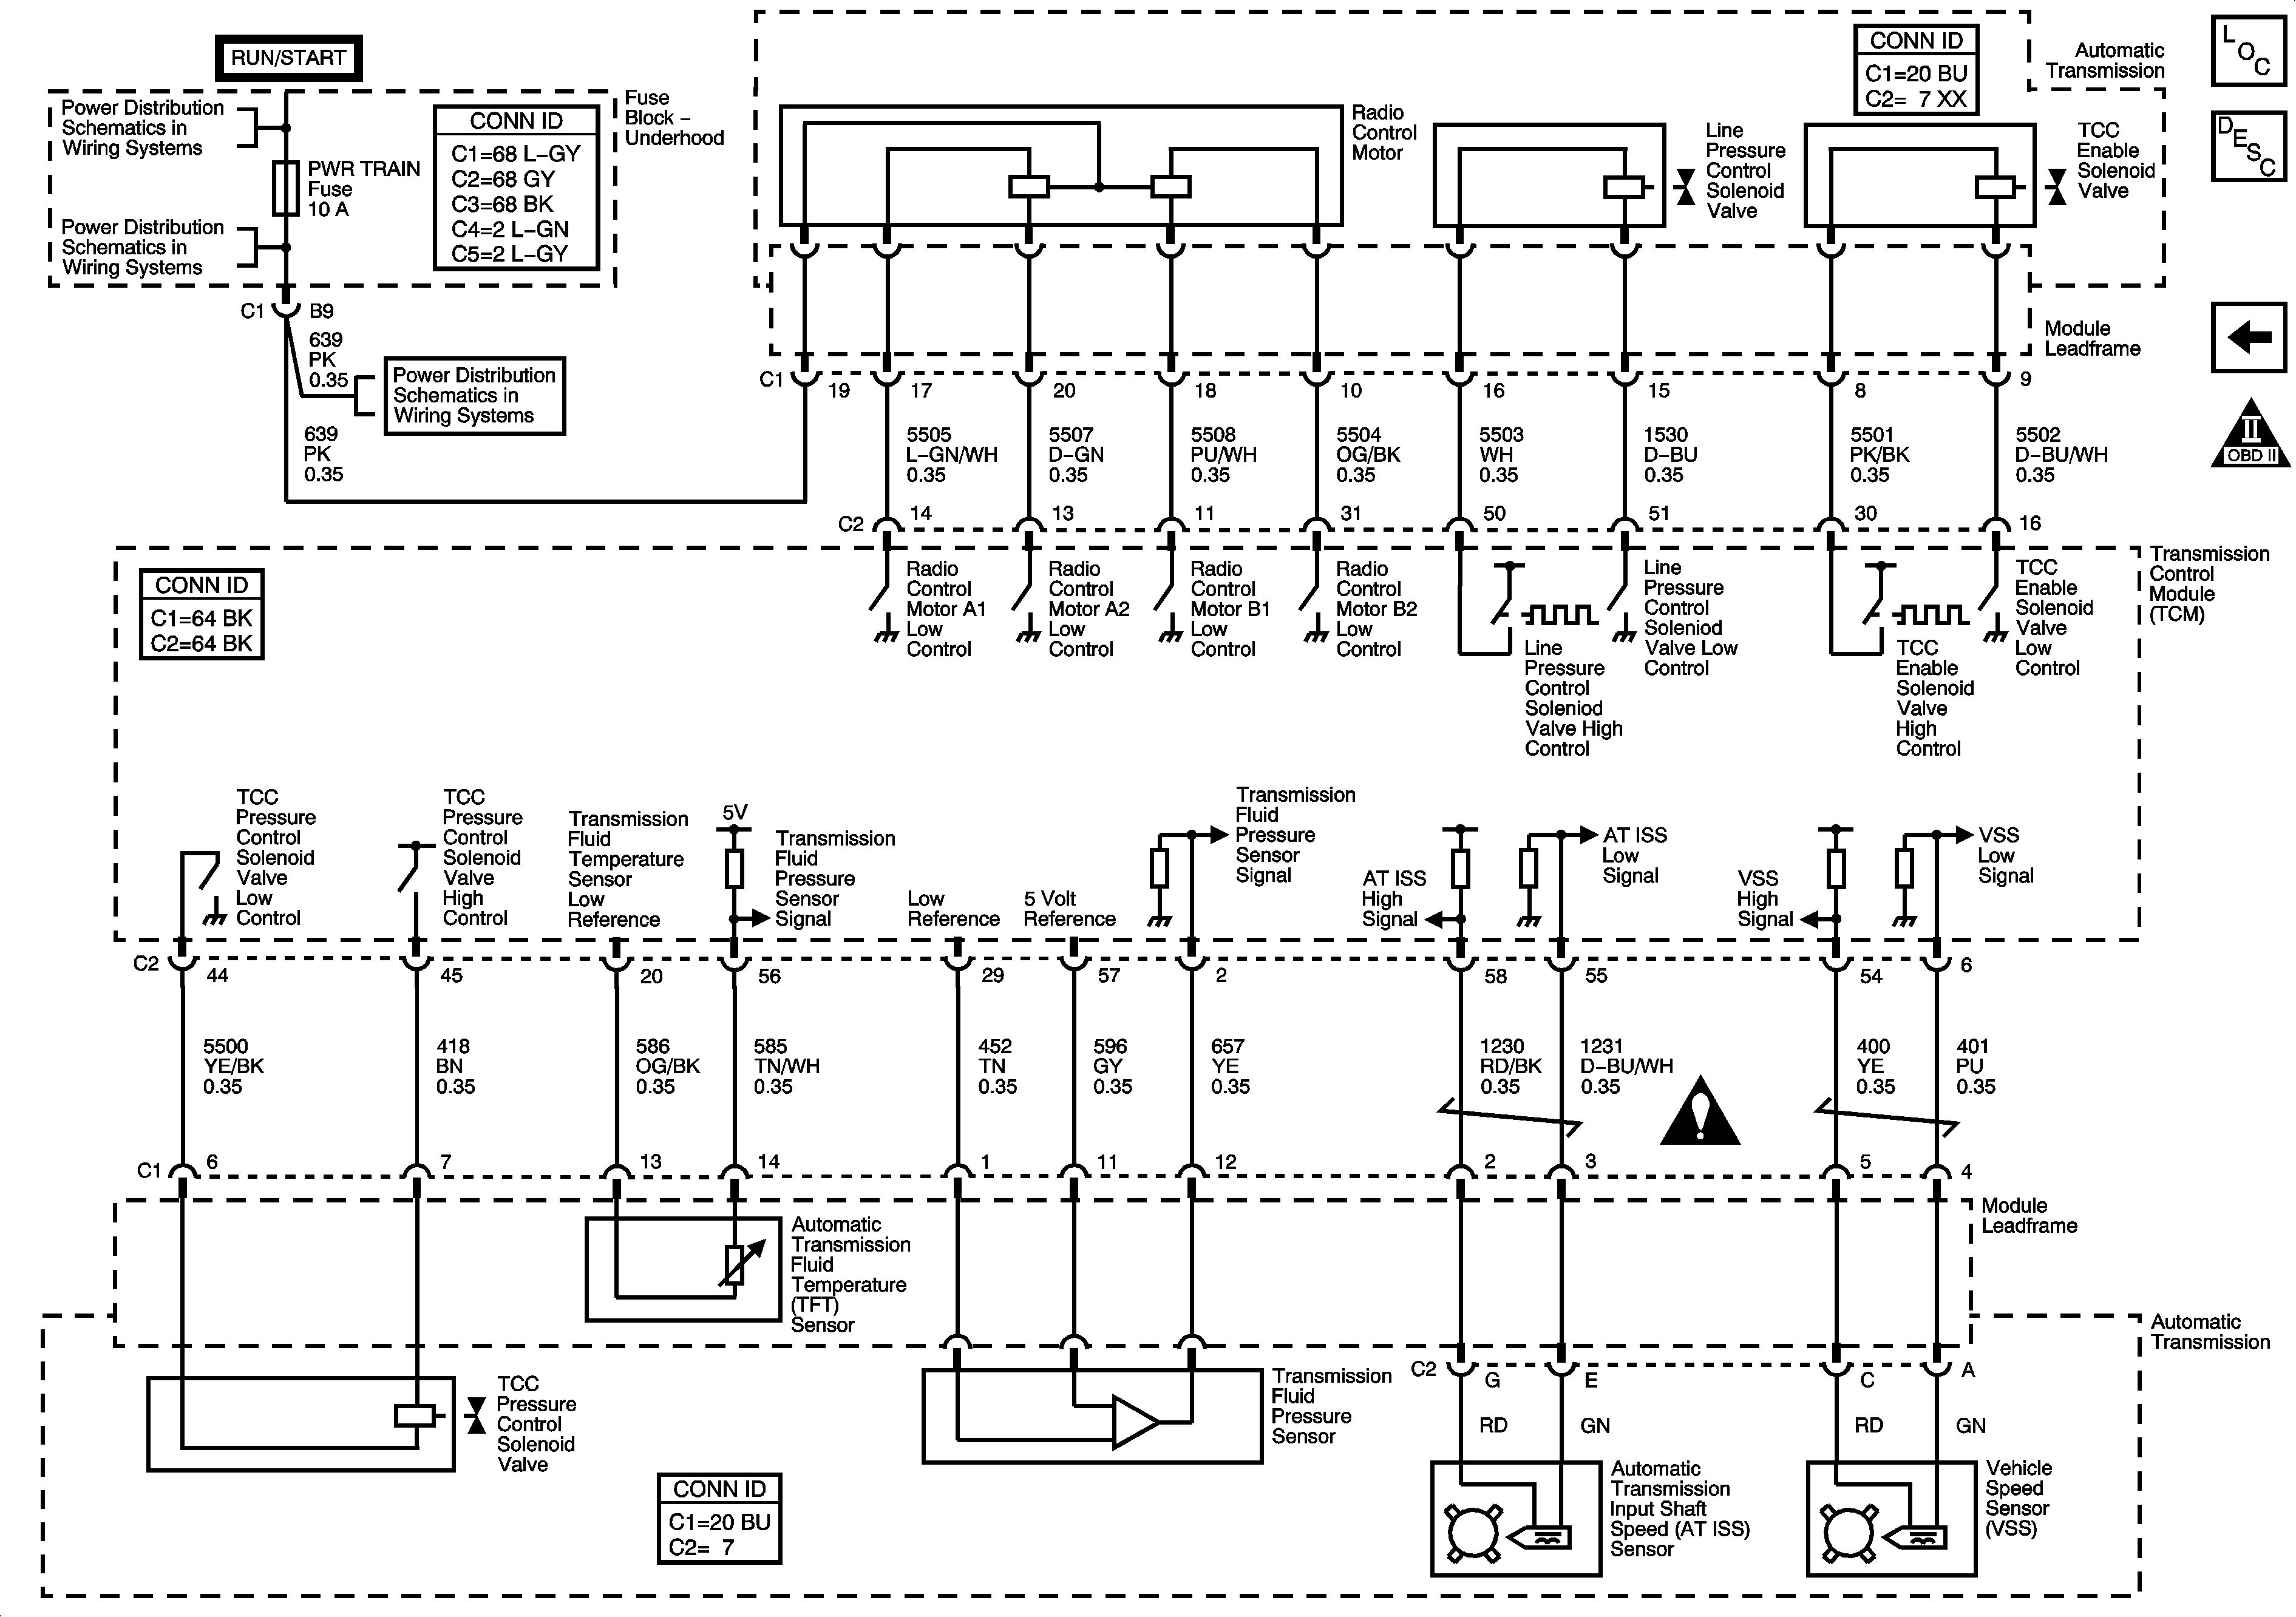 2007 Saturn Aura Engine Diagram Take A Look About 2009 Saturn Vue Problems with Amazing Of 2007 Saturn Aura Engine Diagram